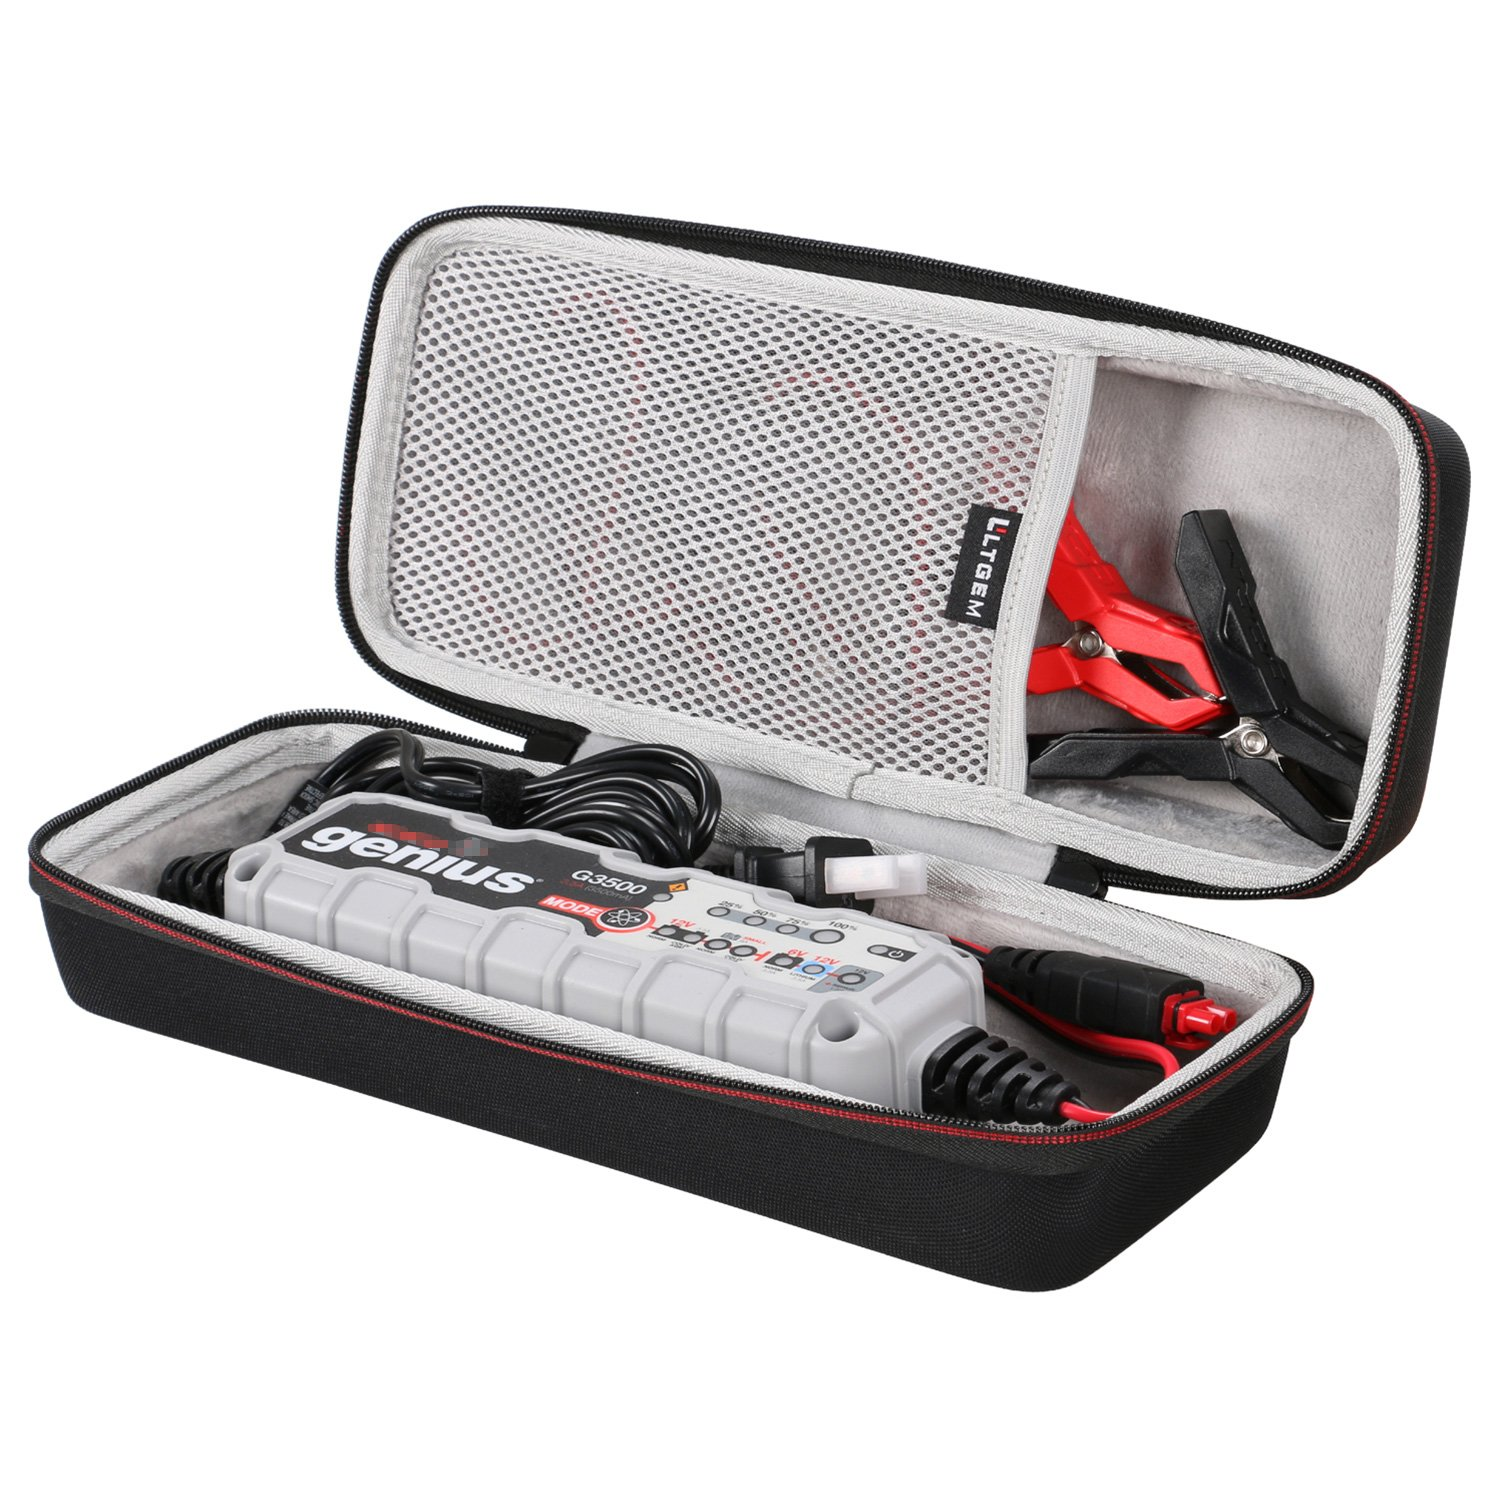 LTGEM EVA Hard Carrying Case Compatible with NOCO G7200 Vehicle Battery Charger